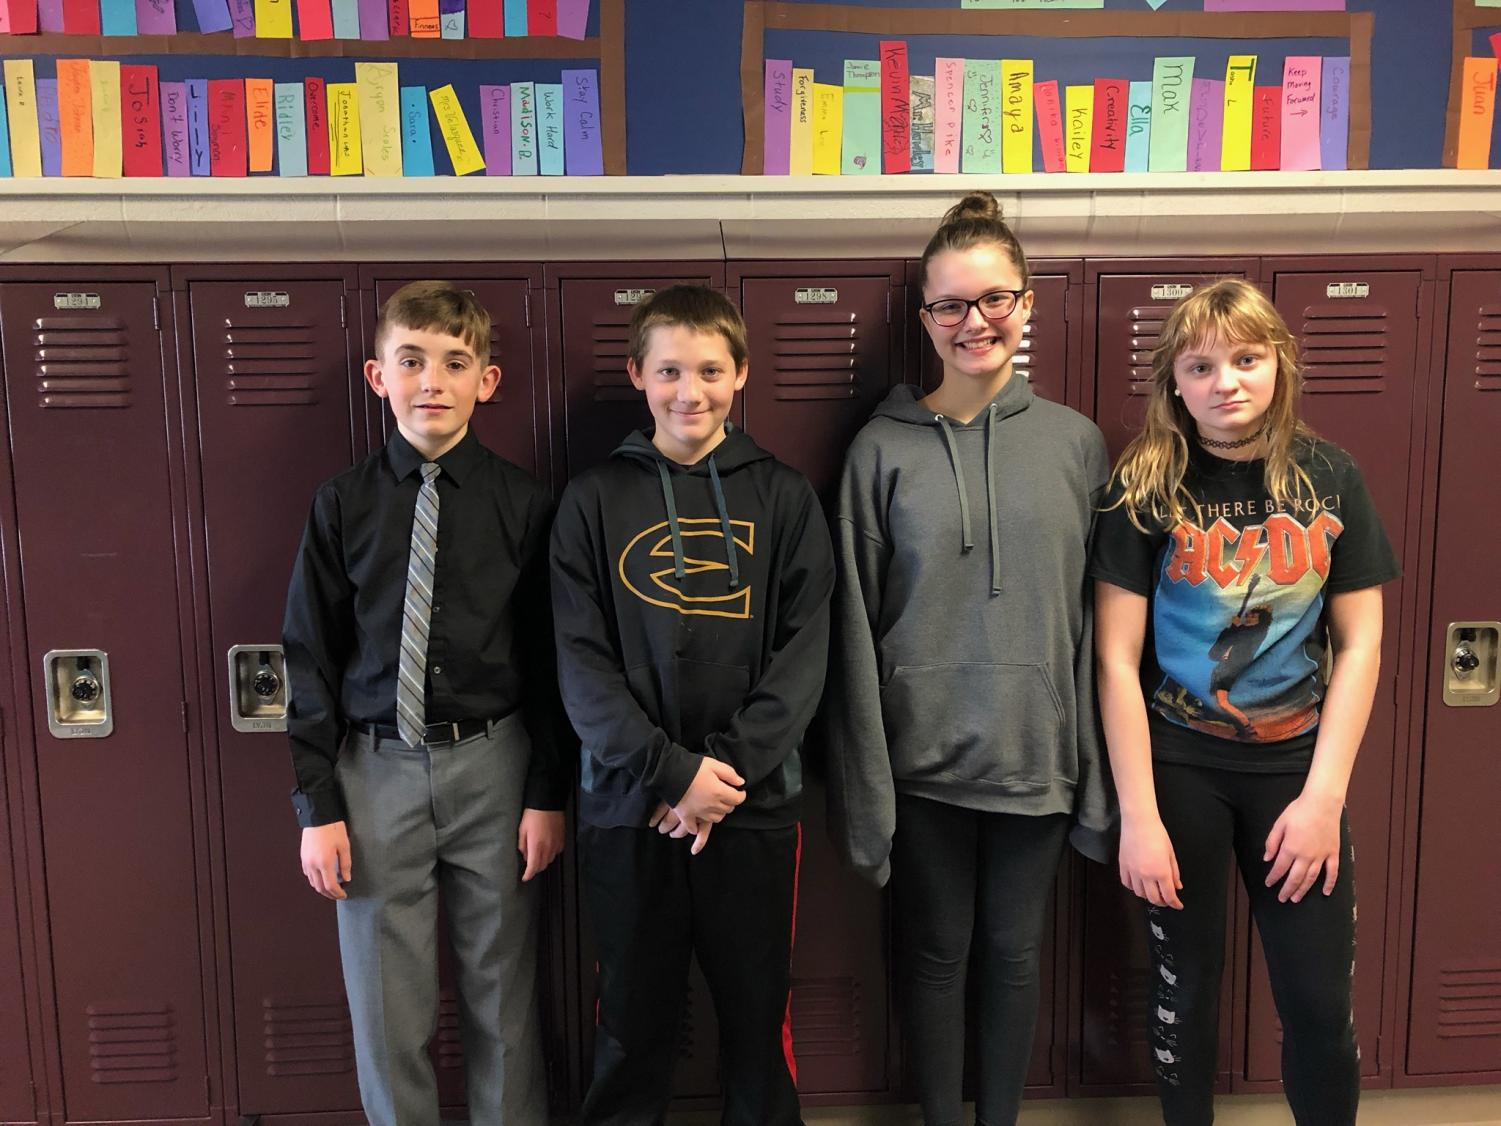 A couple of 7th grade students dressed for blackout day